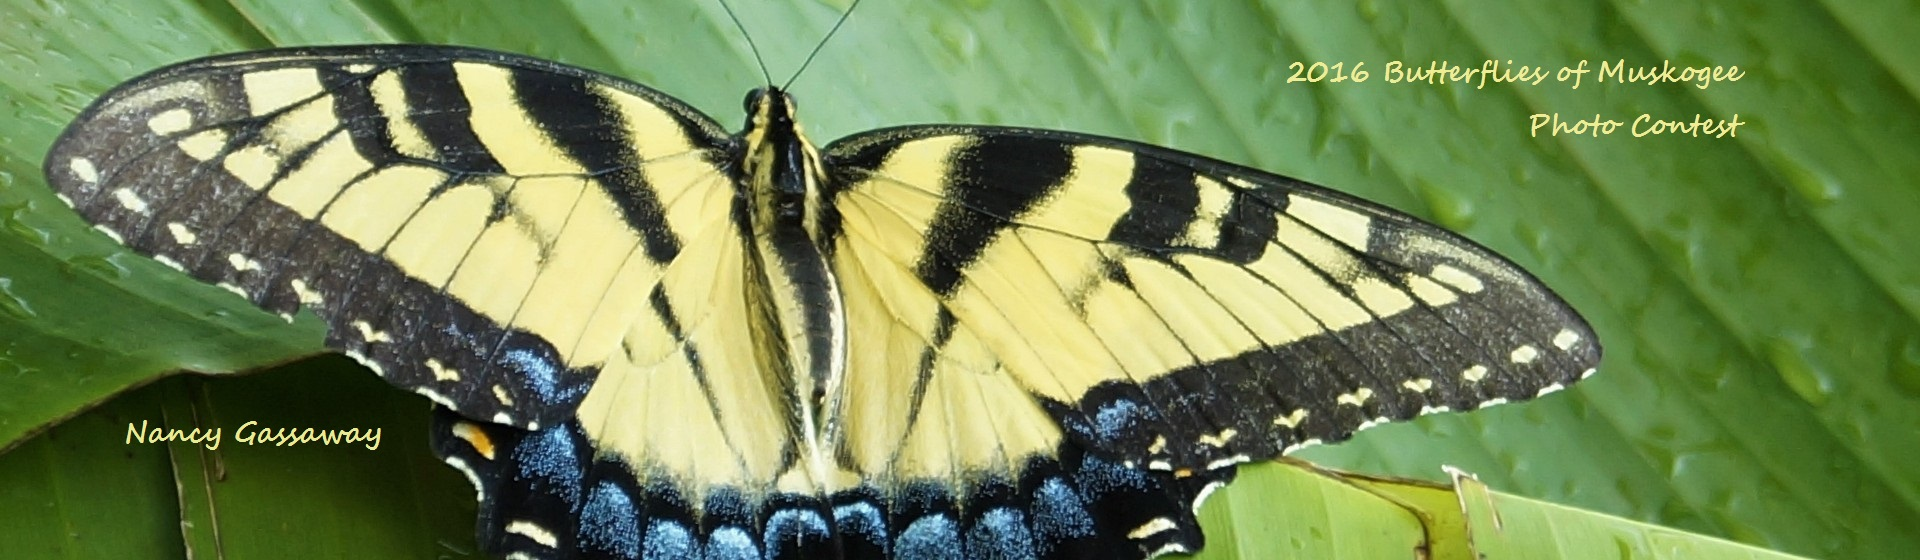 butterflycontest2016-18Web1